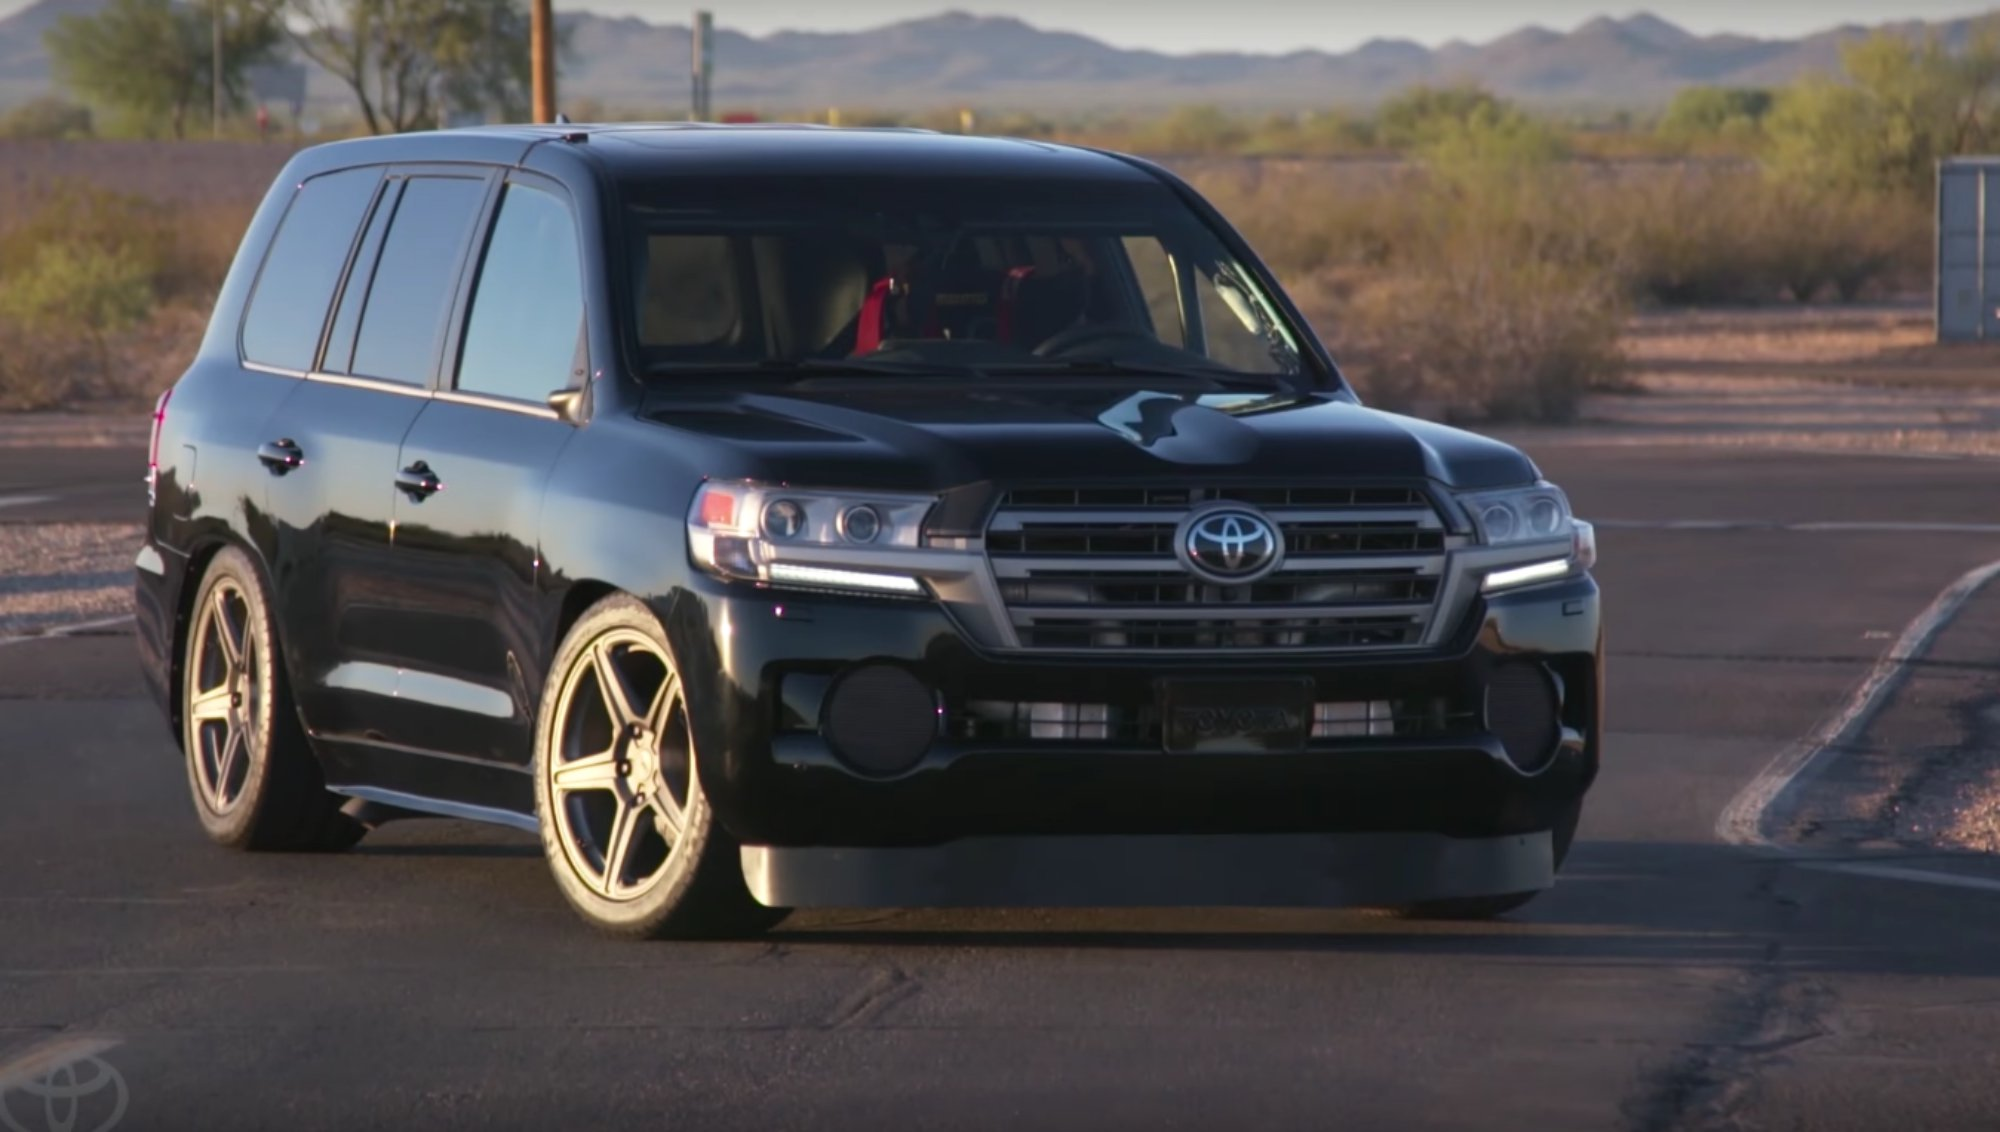 Fastest Car In The World 2017 >> News - Toyota Land Cruiser, The World's Fastest SUV?